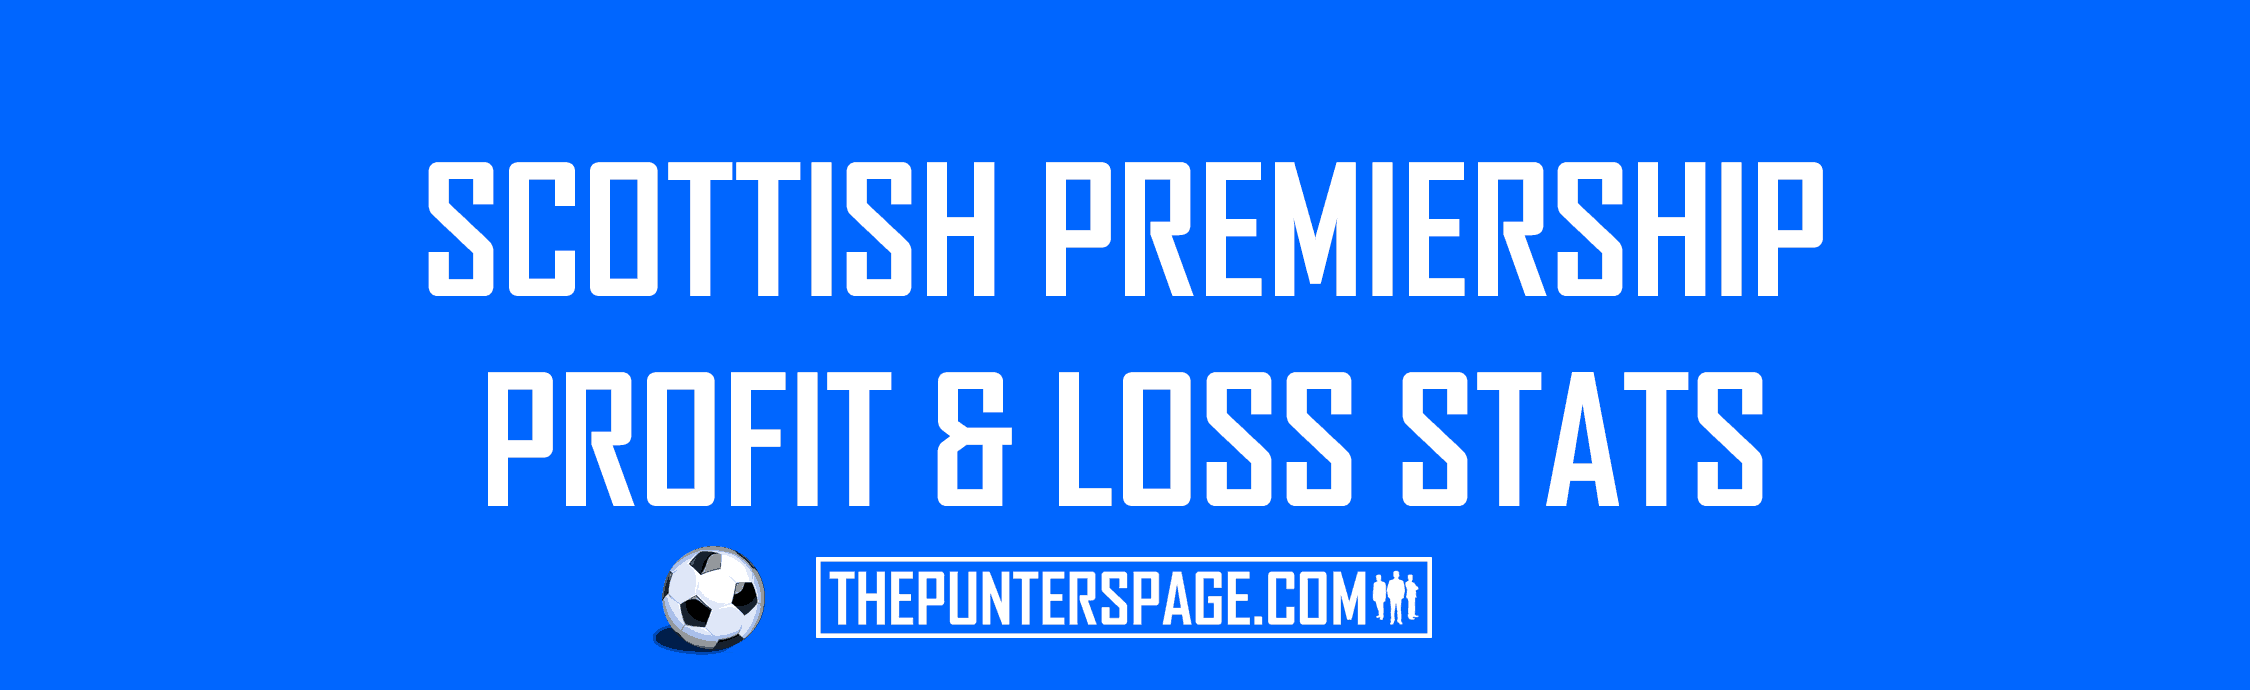 Scottish Premiership Profit & Loss Statistics